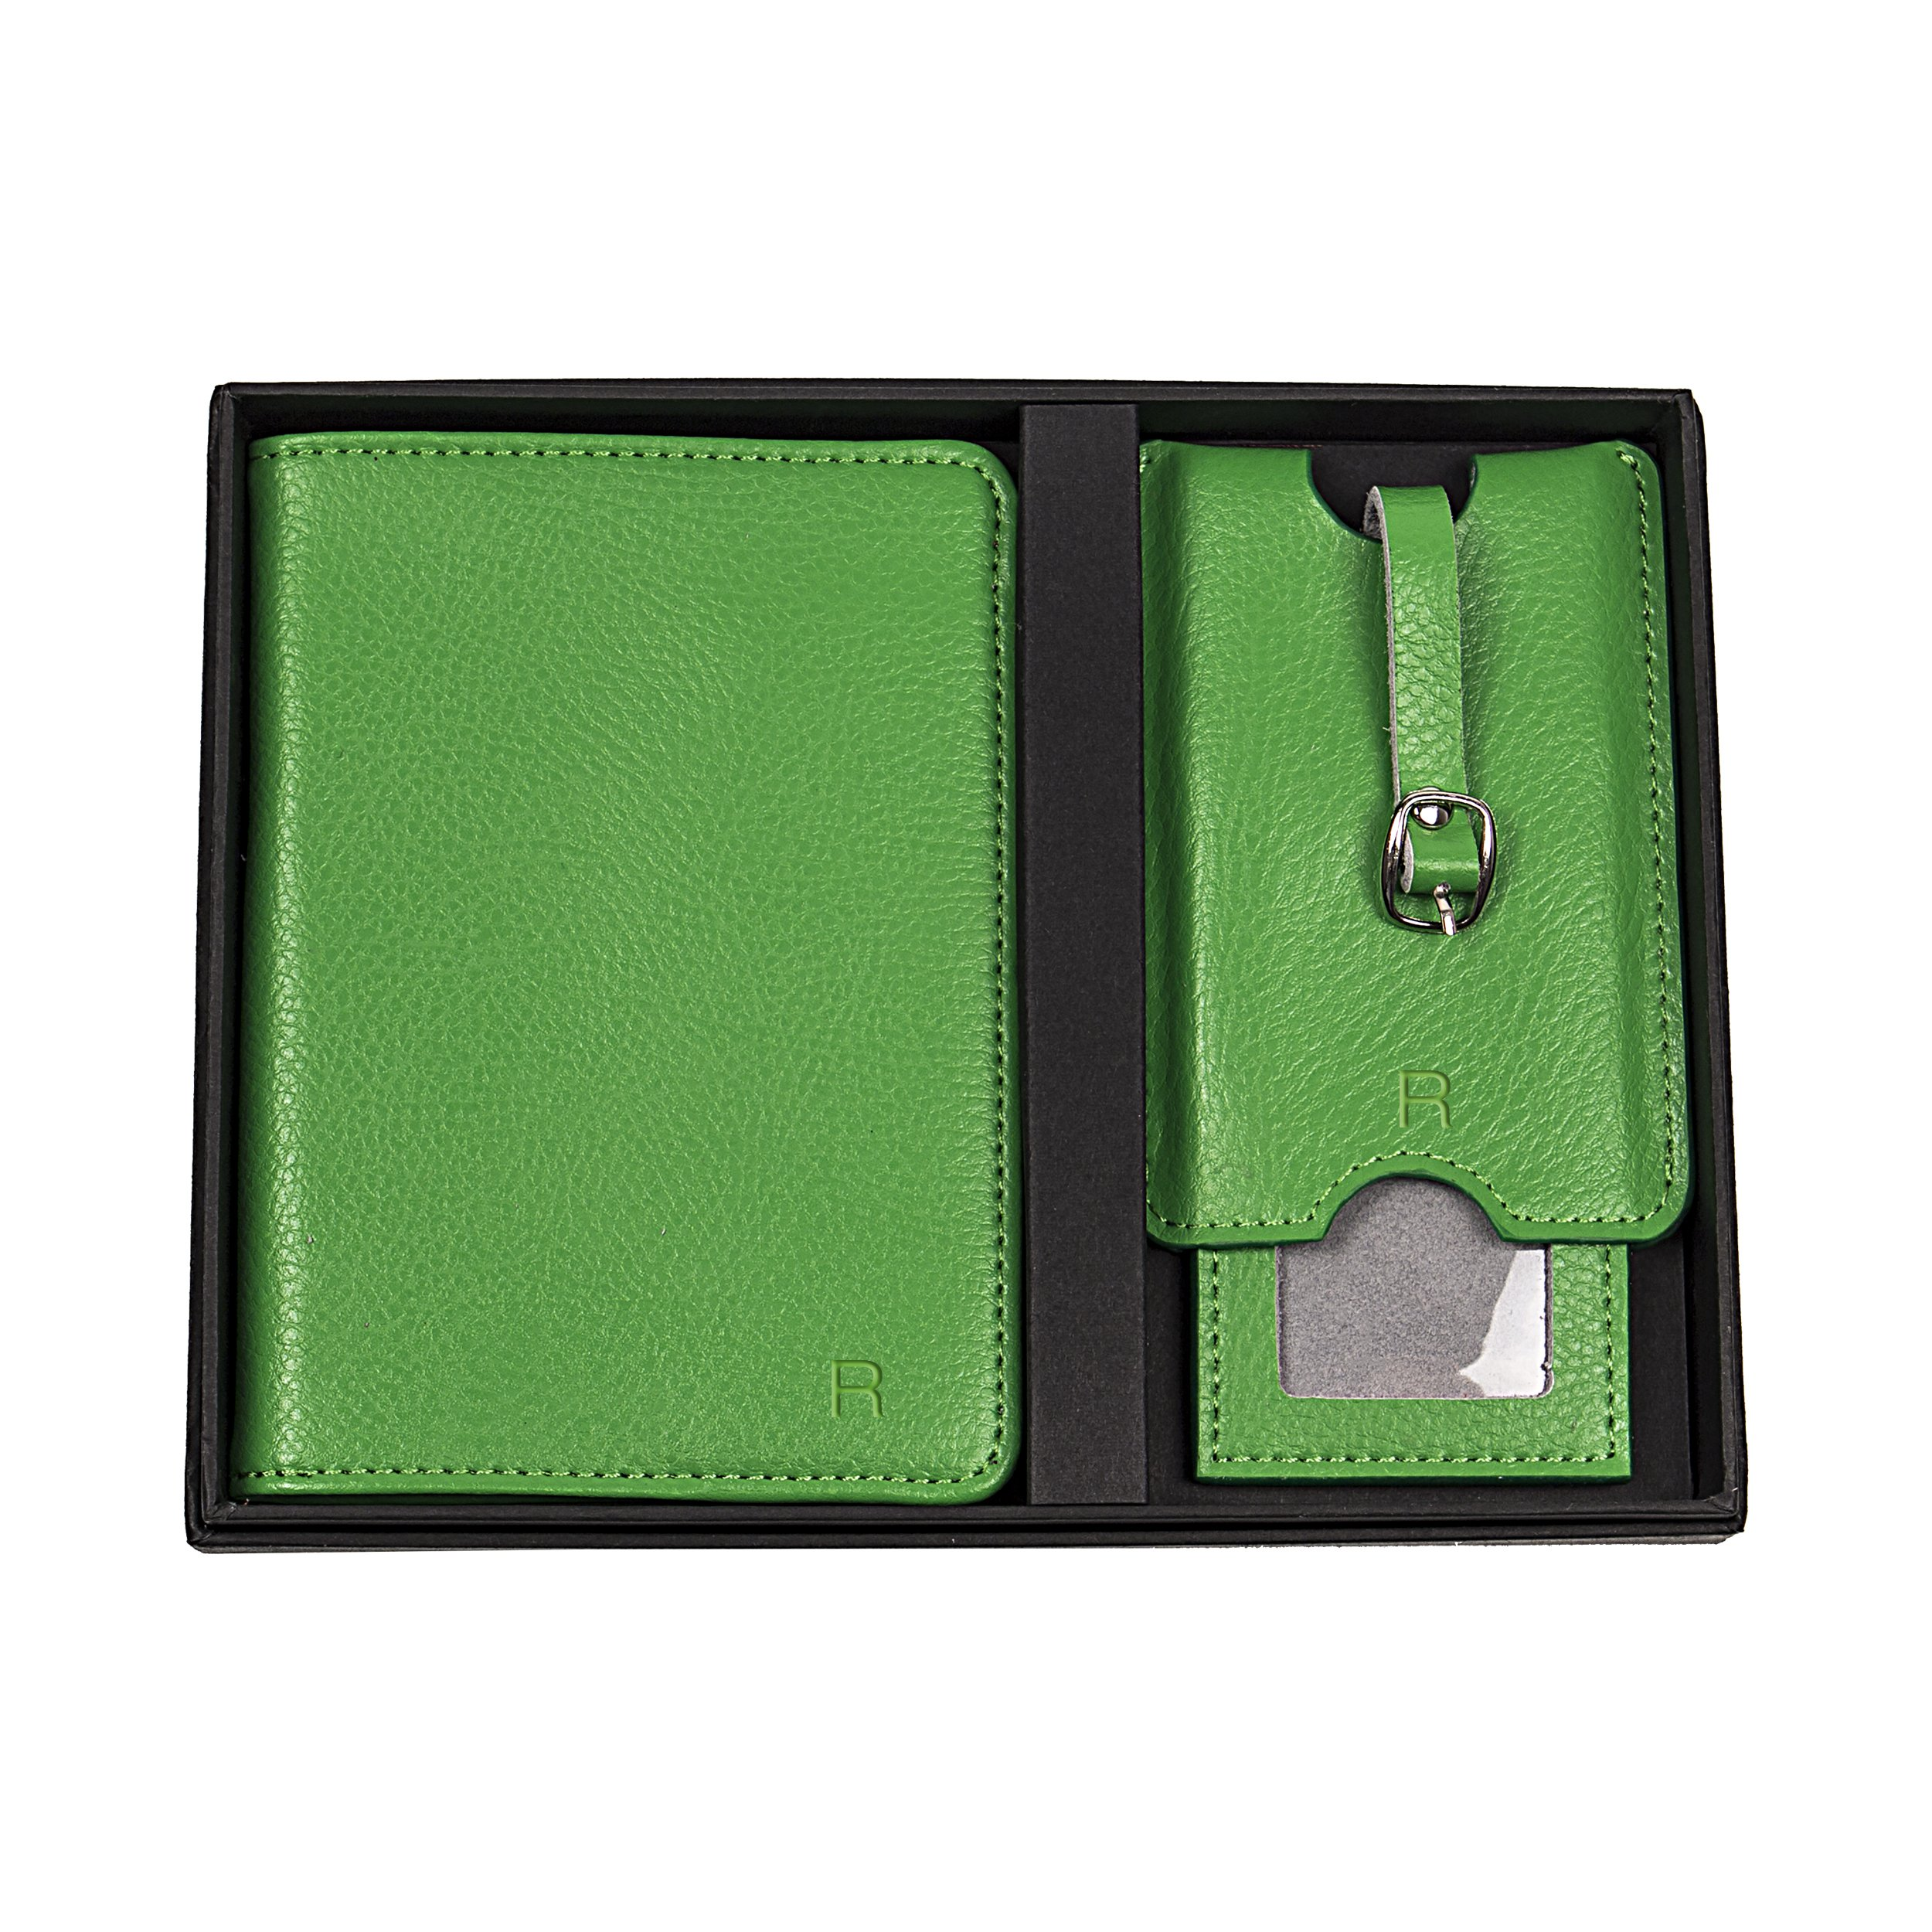 Cathy's Concepts Personalized Leather Passport Holder & Luggage Tag Set, Green, Letter R